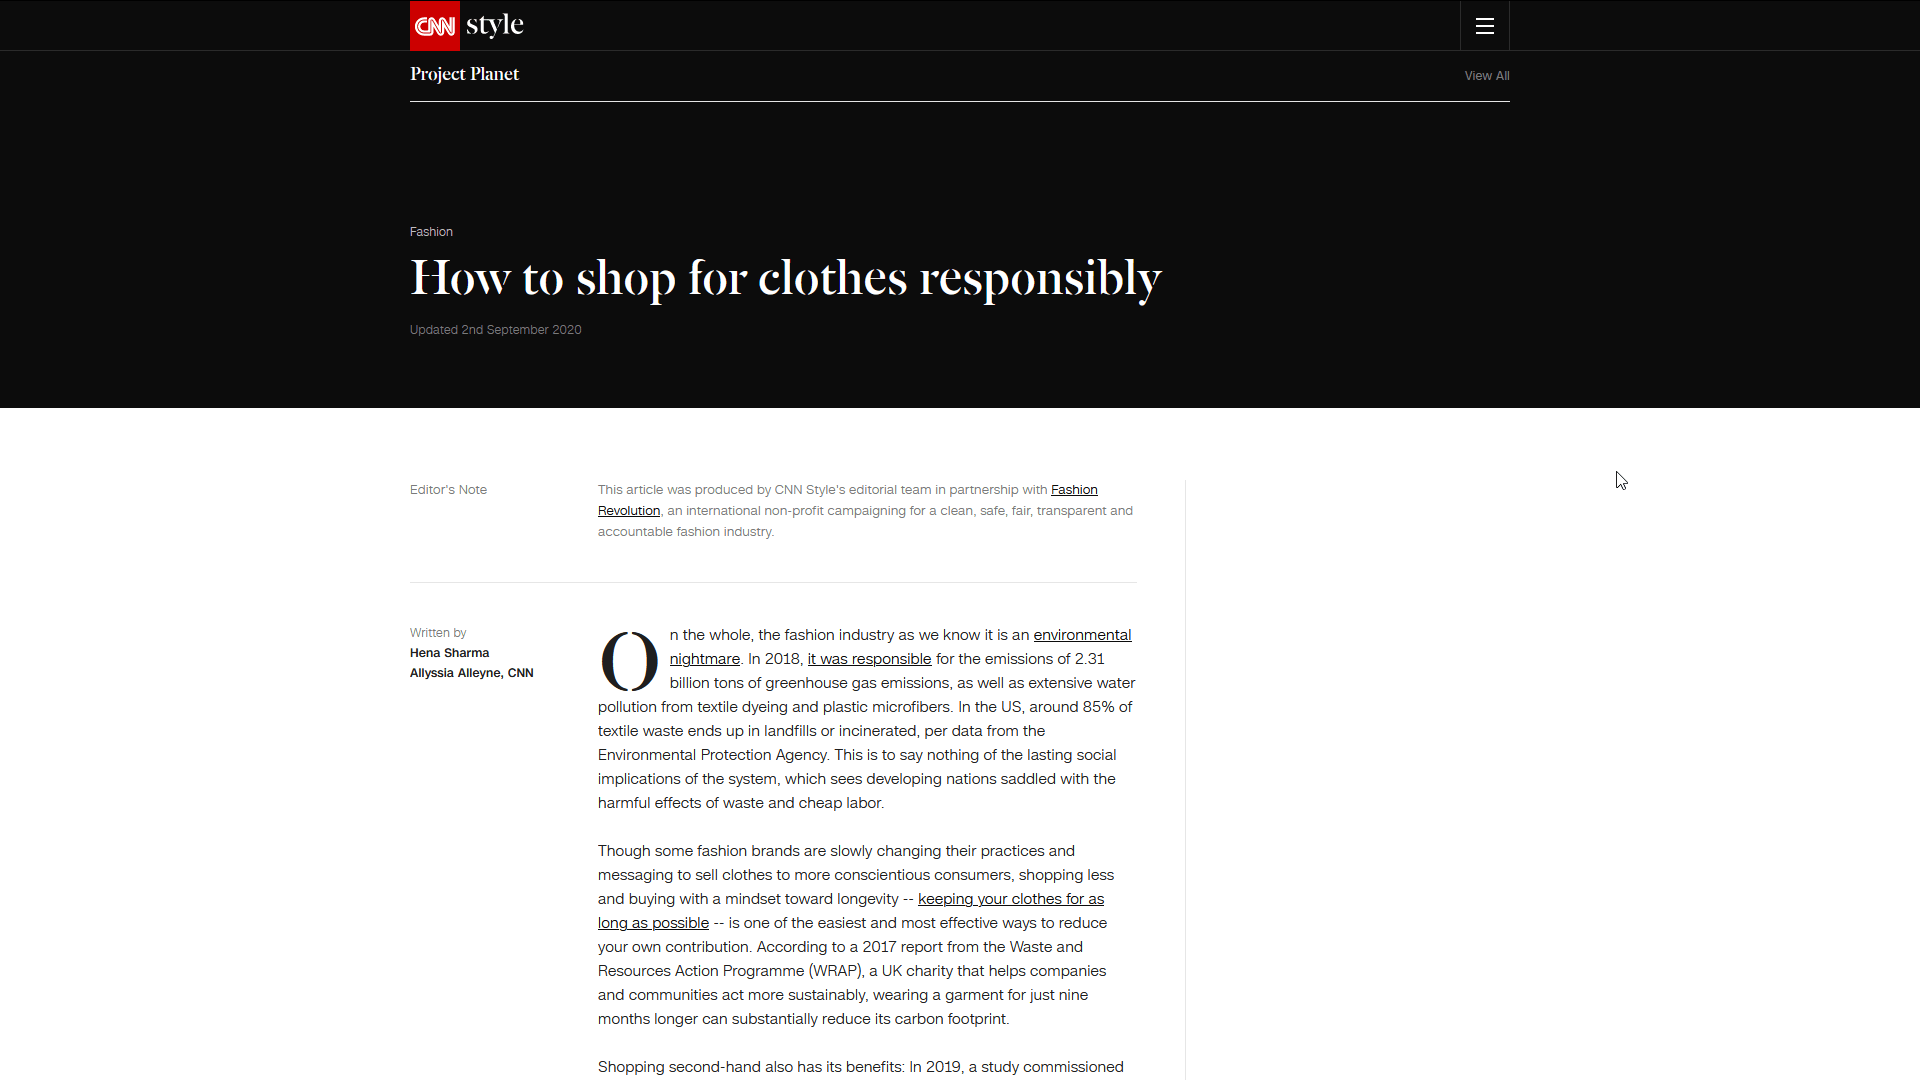 How to shop for clothes responsibly